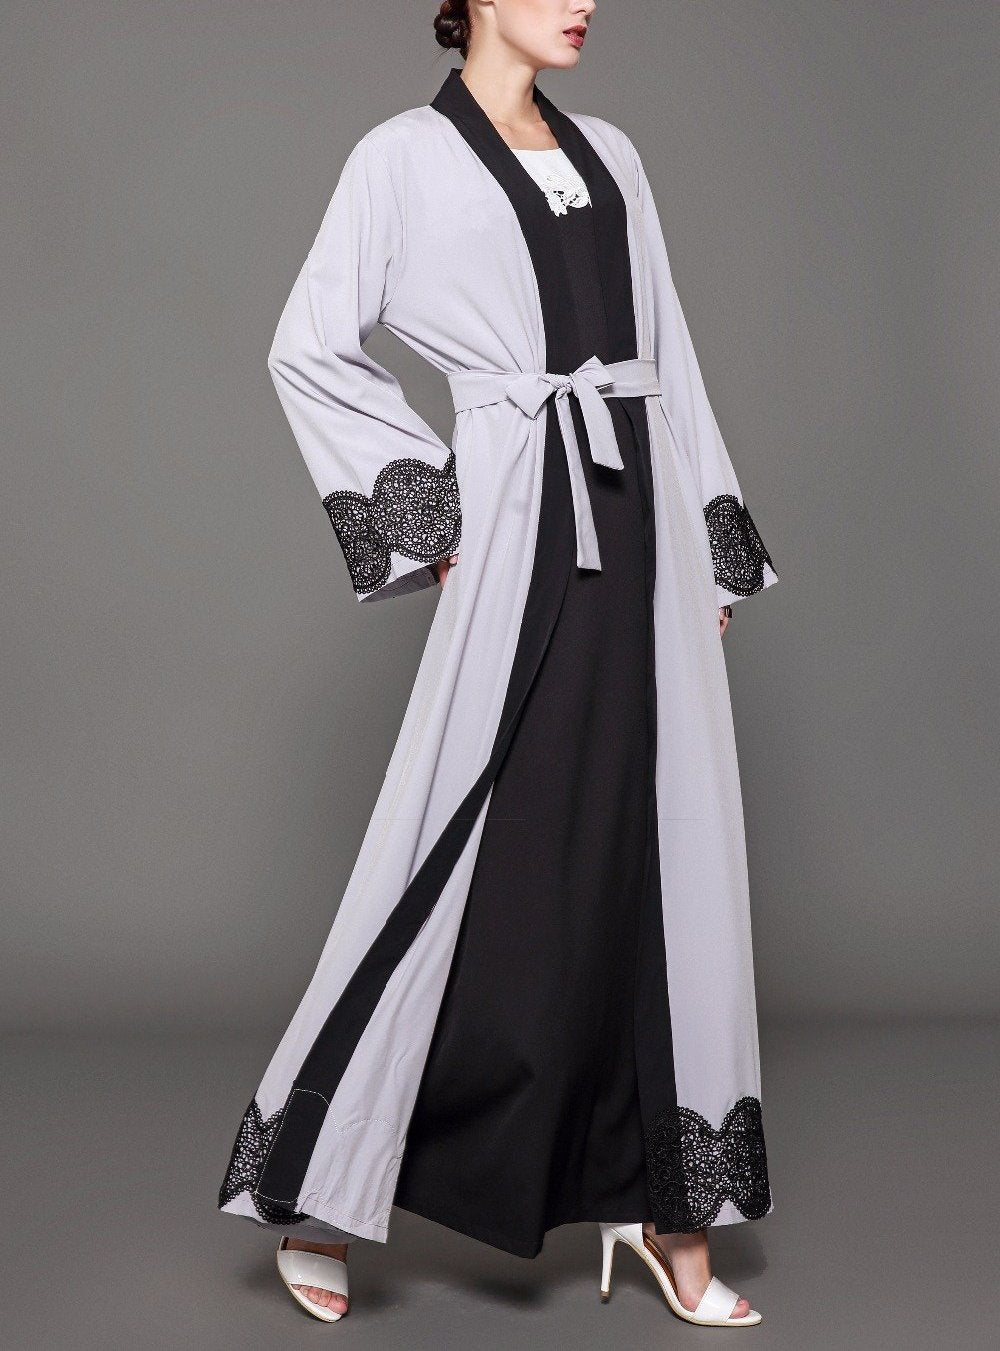 Open Lace Embroidery Tunic Abaya - BuyModest.com